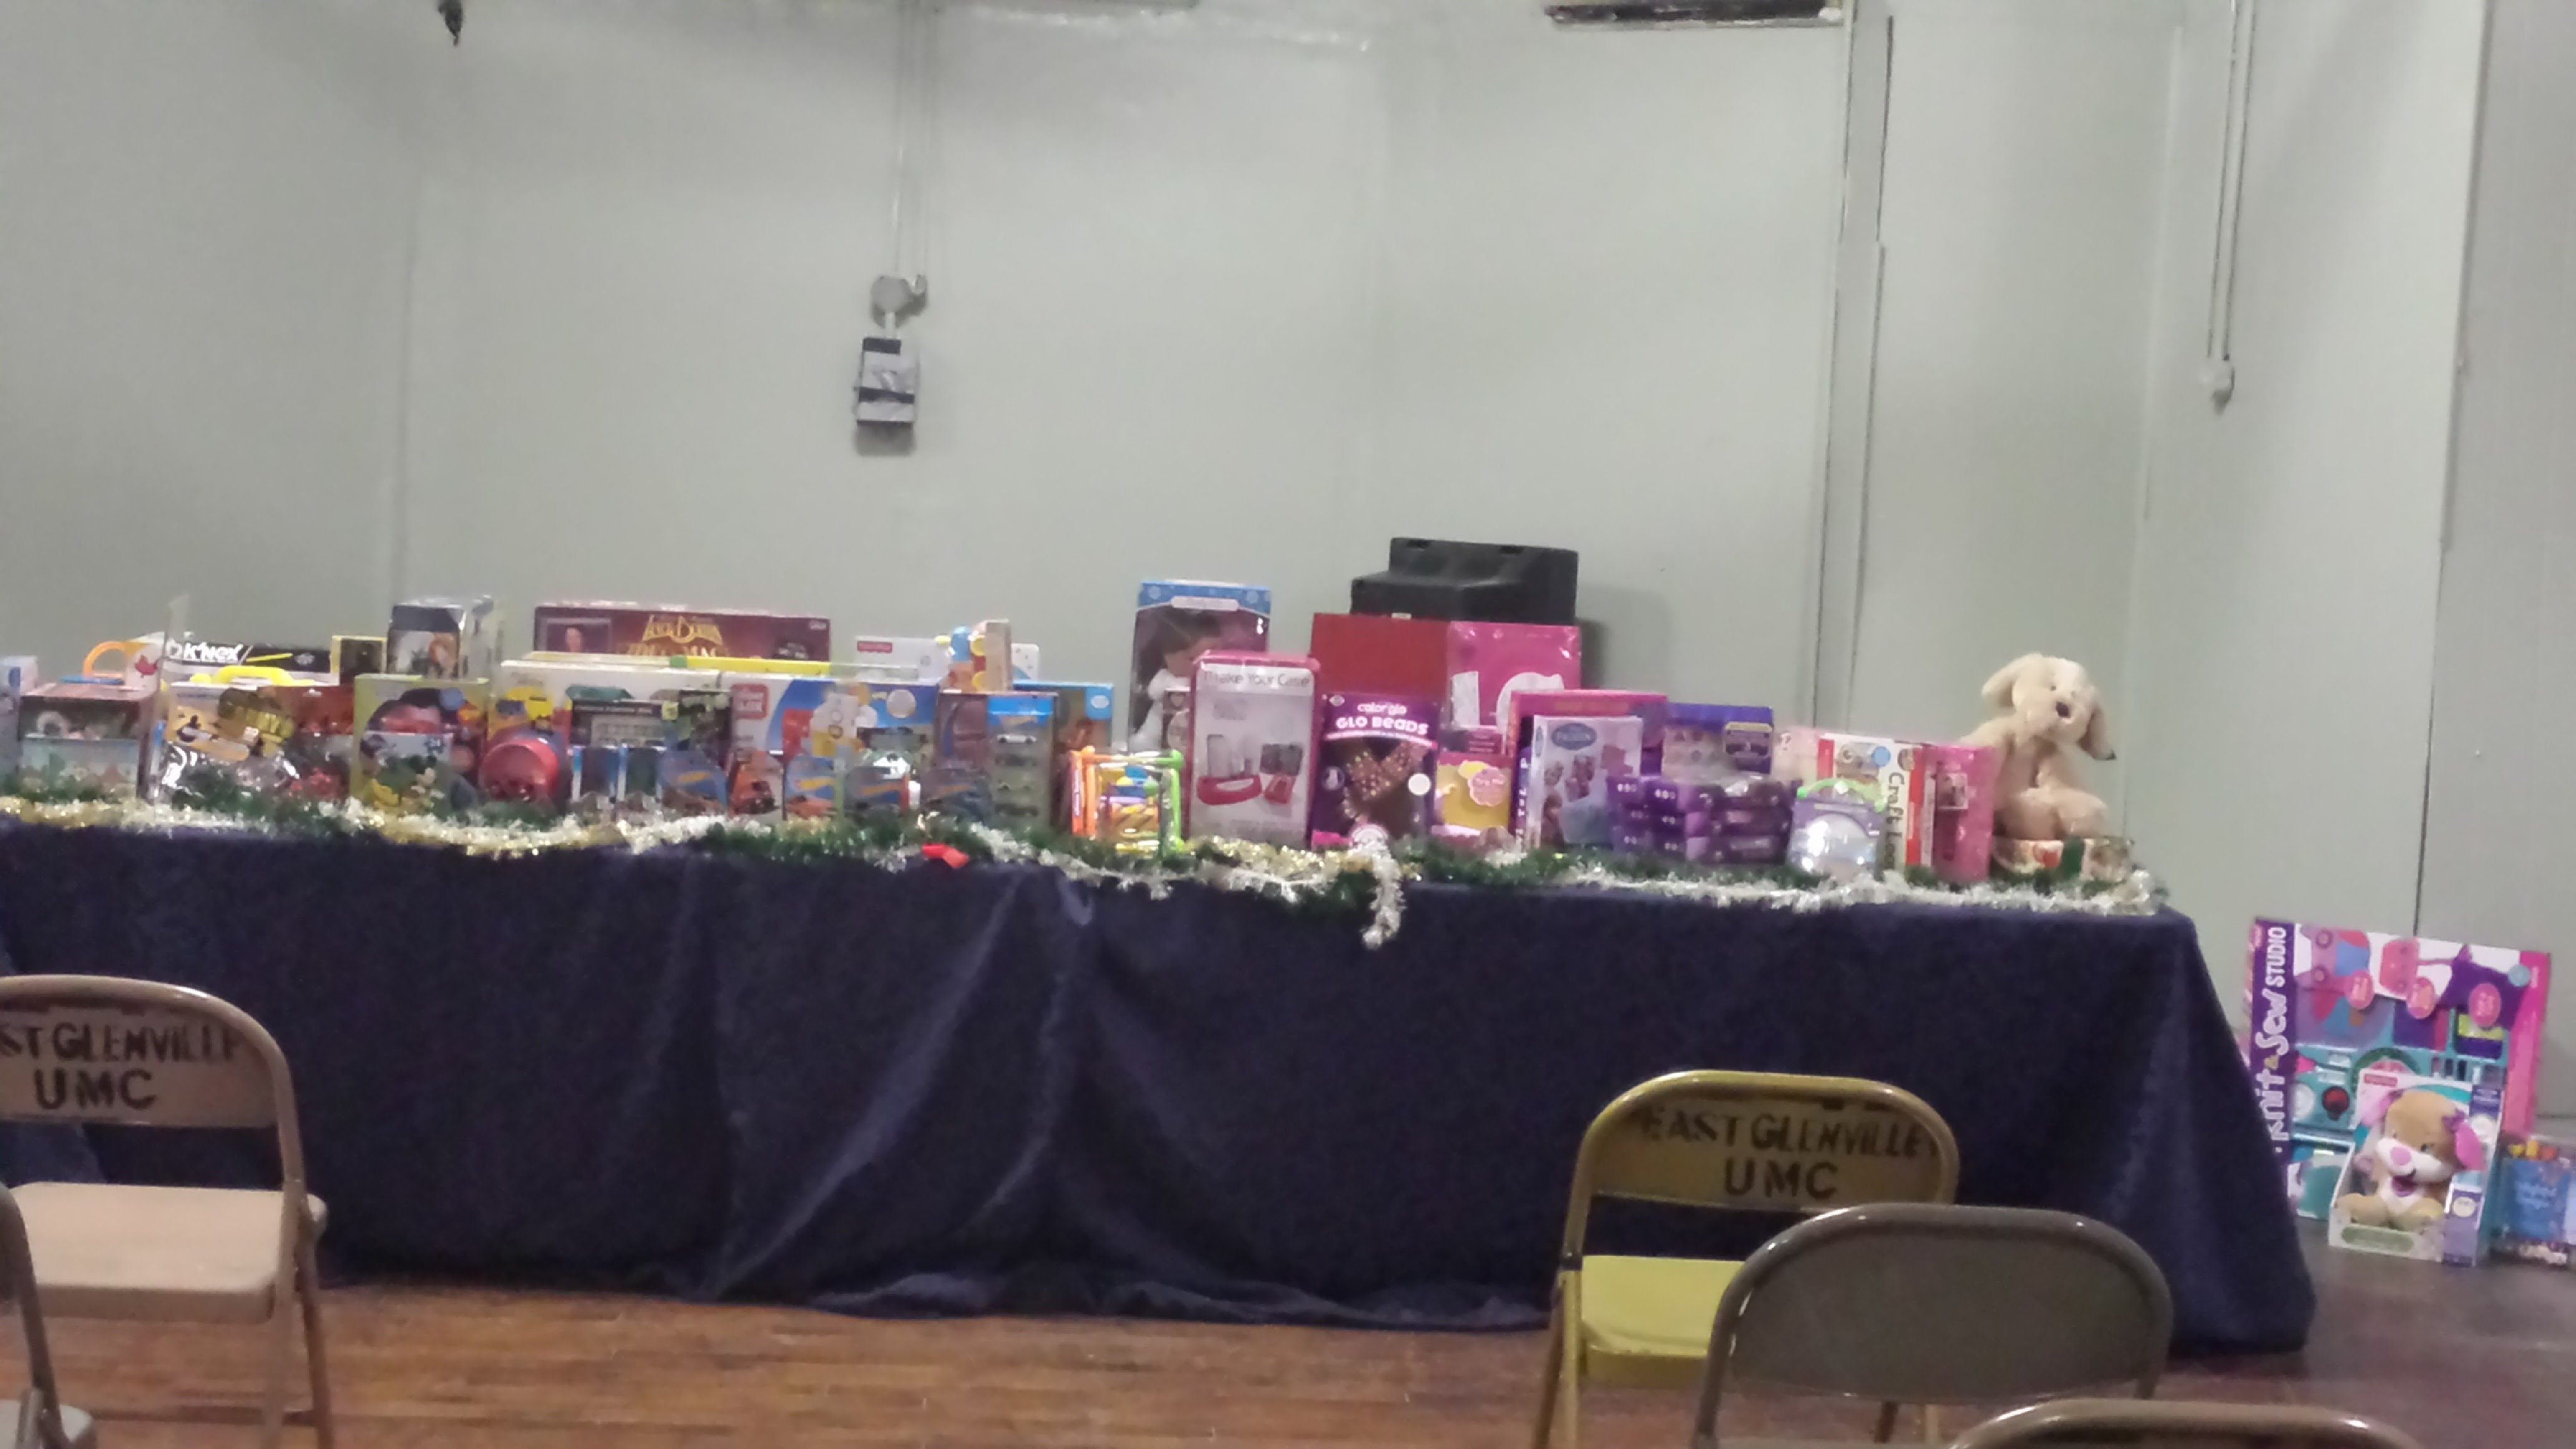 https://0201.nccdn.net/1_2/000/000/08c/e4b/toys-for-tots2-4128x2322.jpg